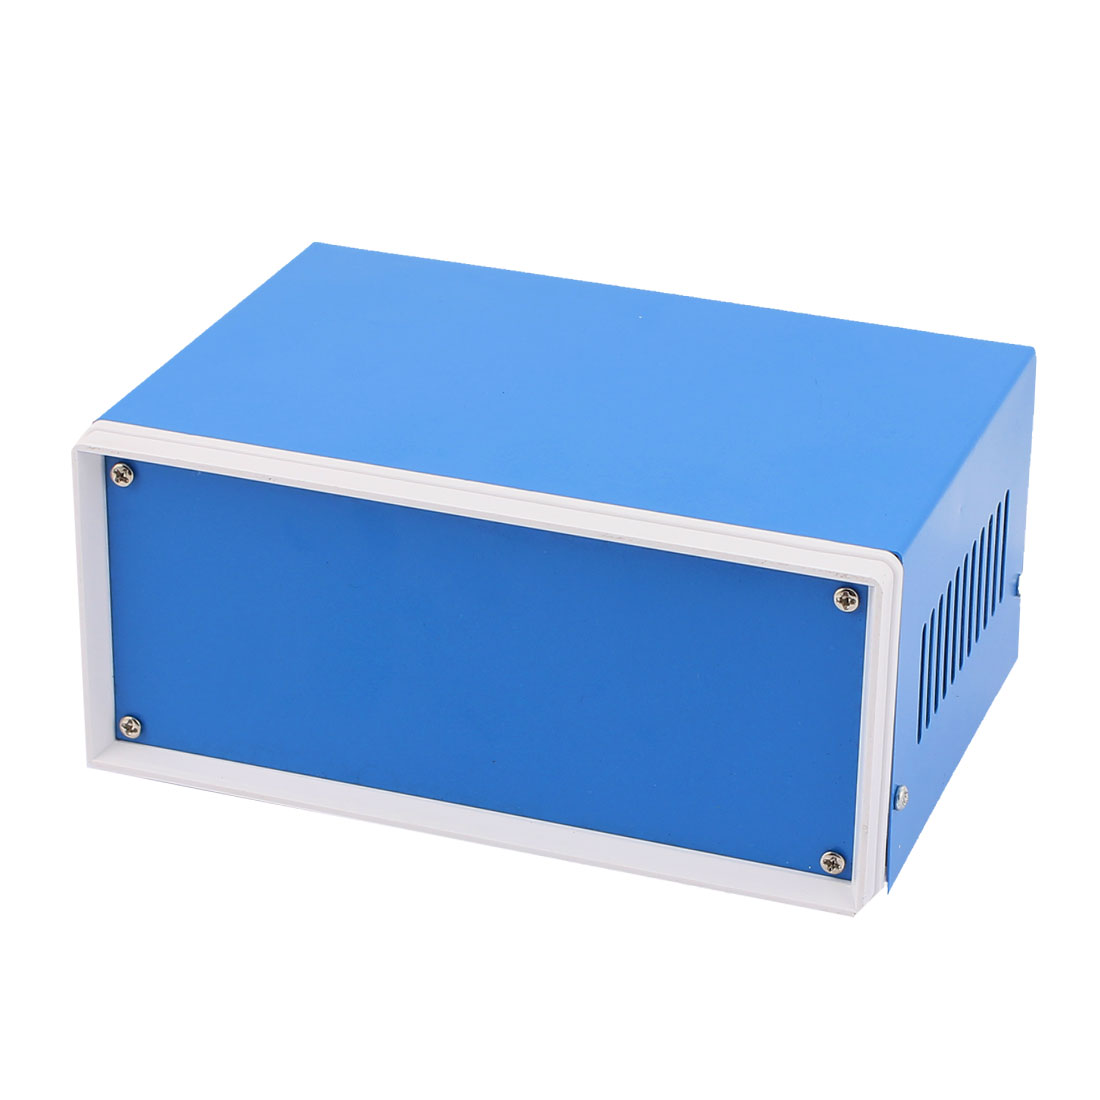 170mmx130mmx75mm Blue Metal Enclosure Case DIY Electronic Wiring Project Box